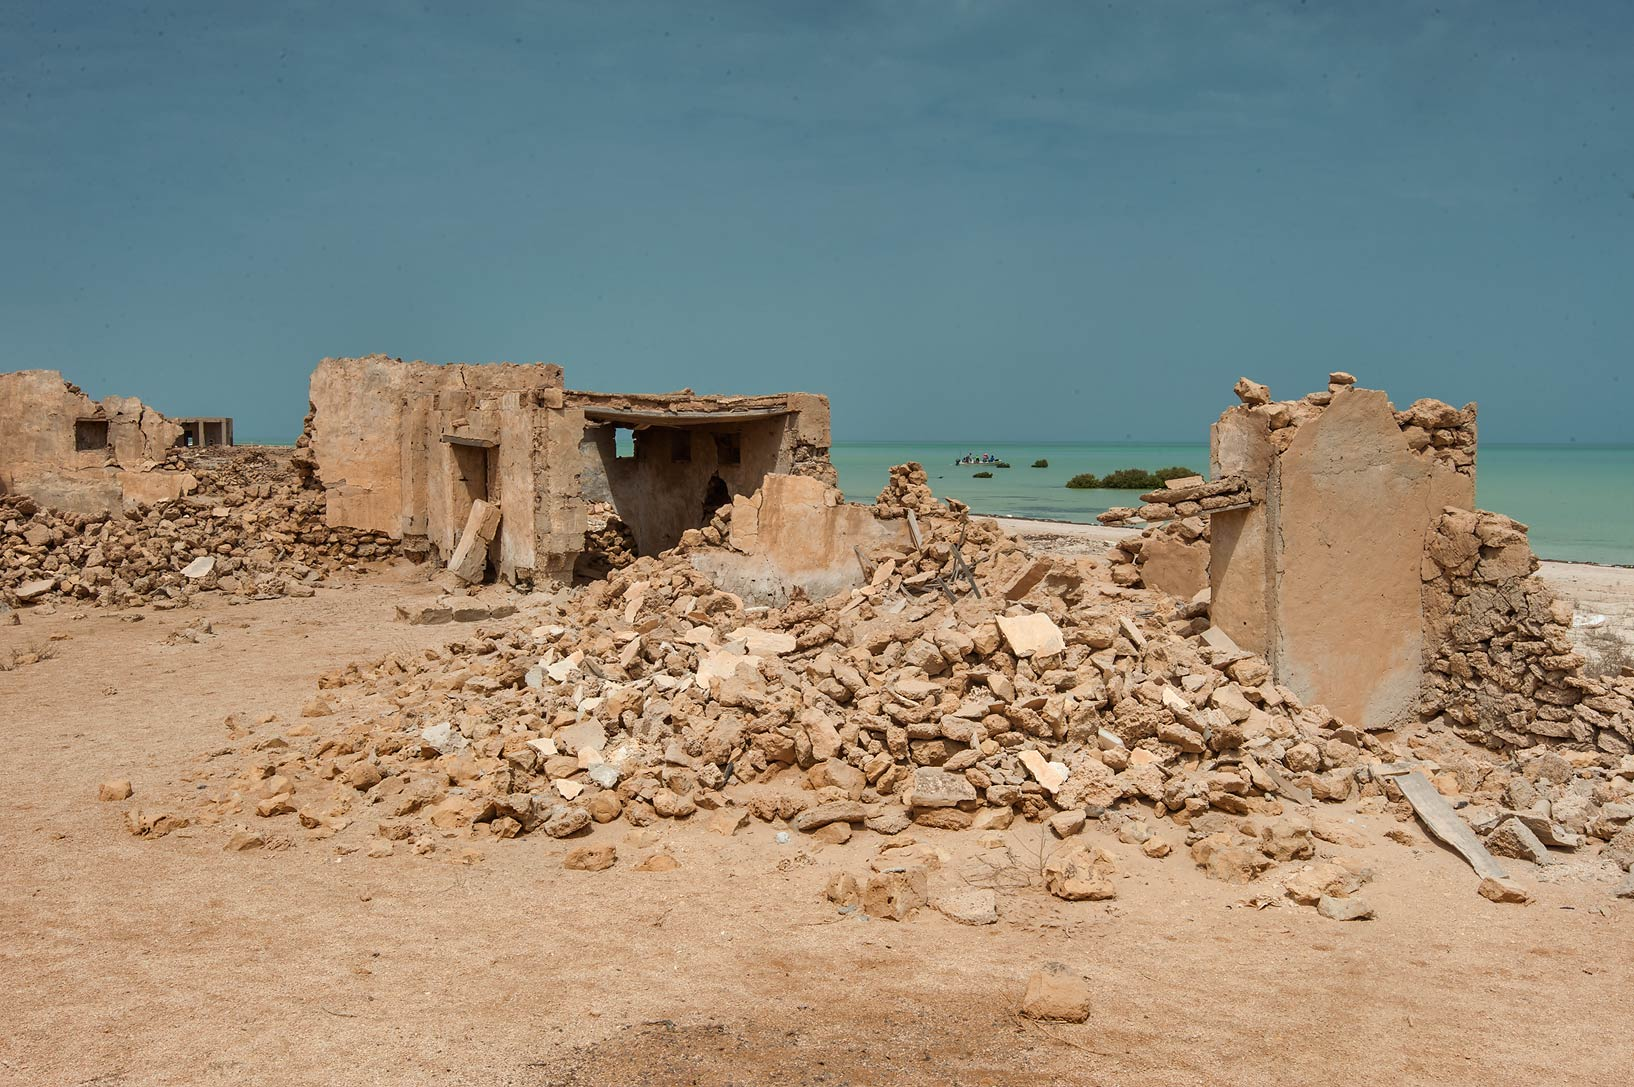 Ruins on a beach in a village of Al Areesh (Arish). Northern Qatar